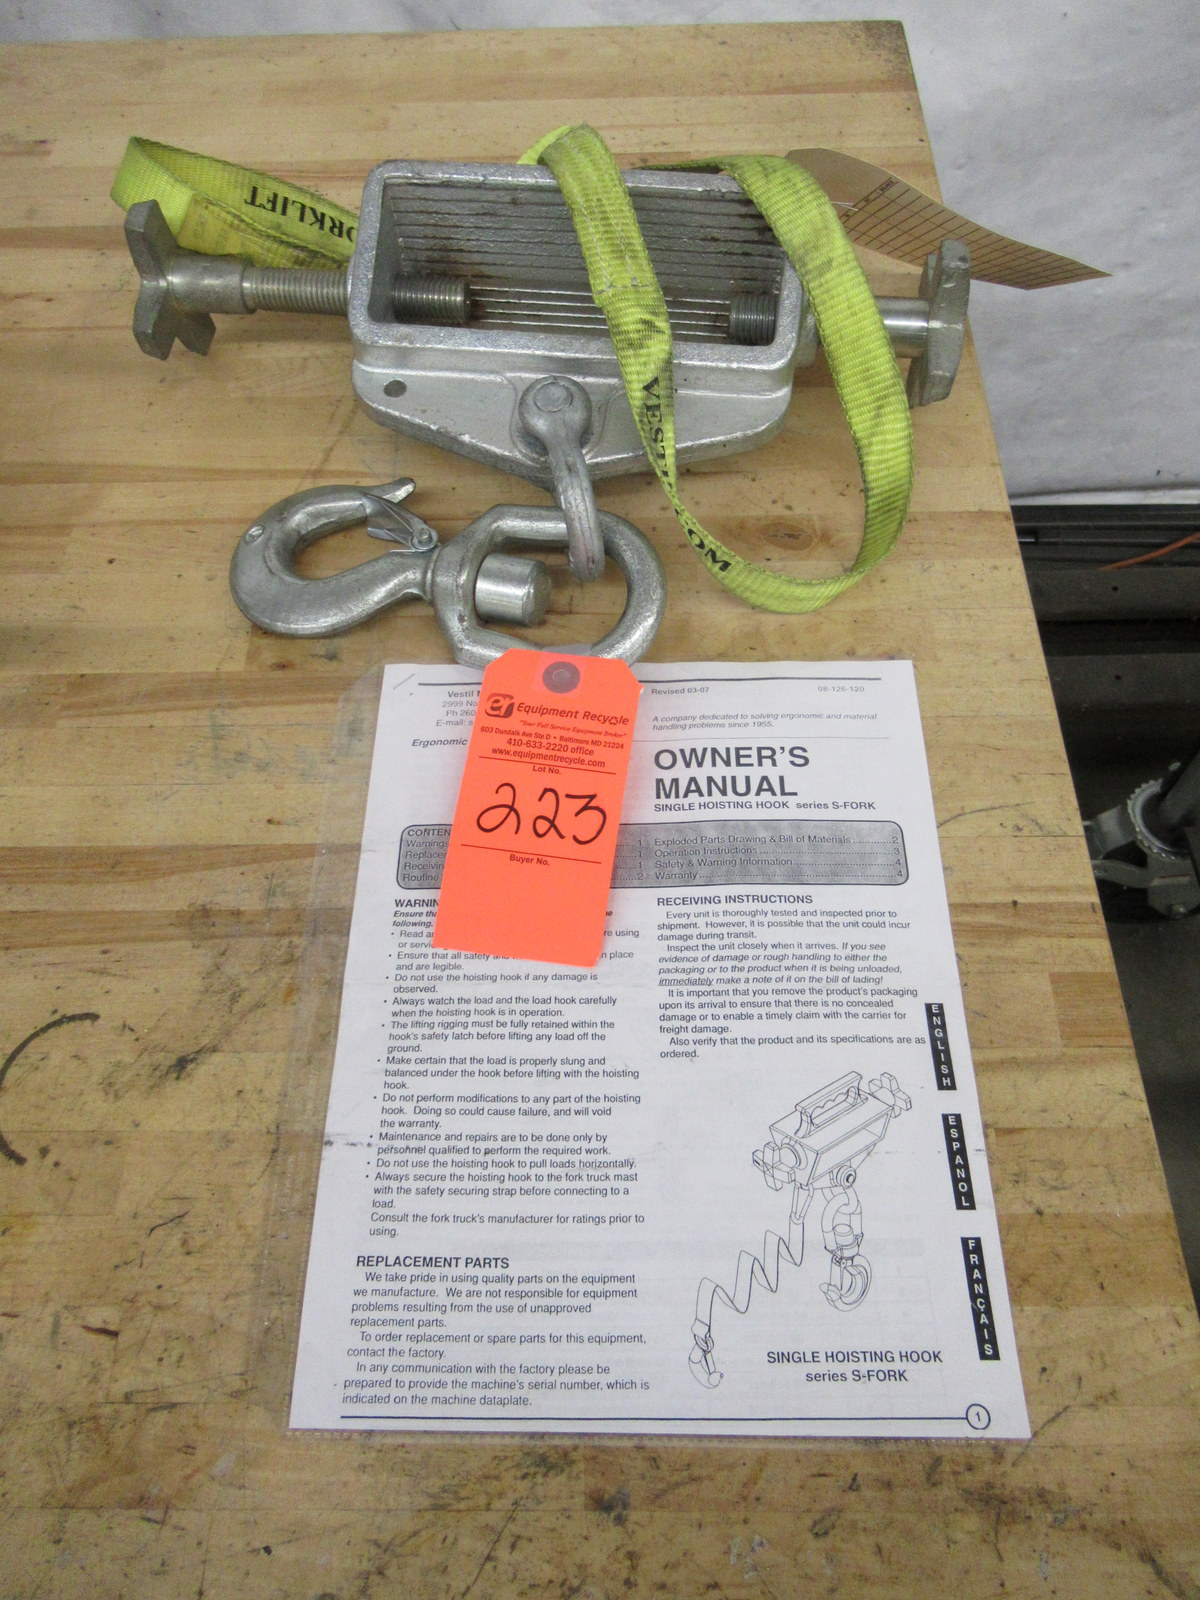 Lot 223 - Vestil S-FORK Swivel Hook